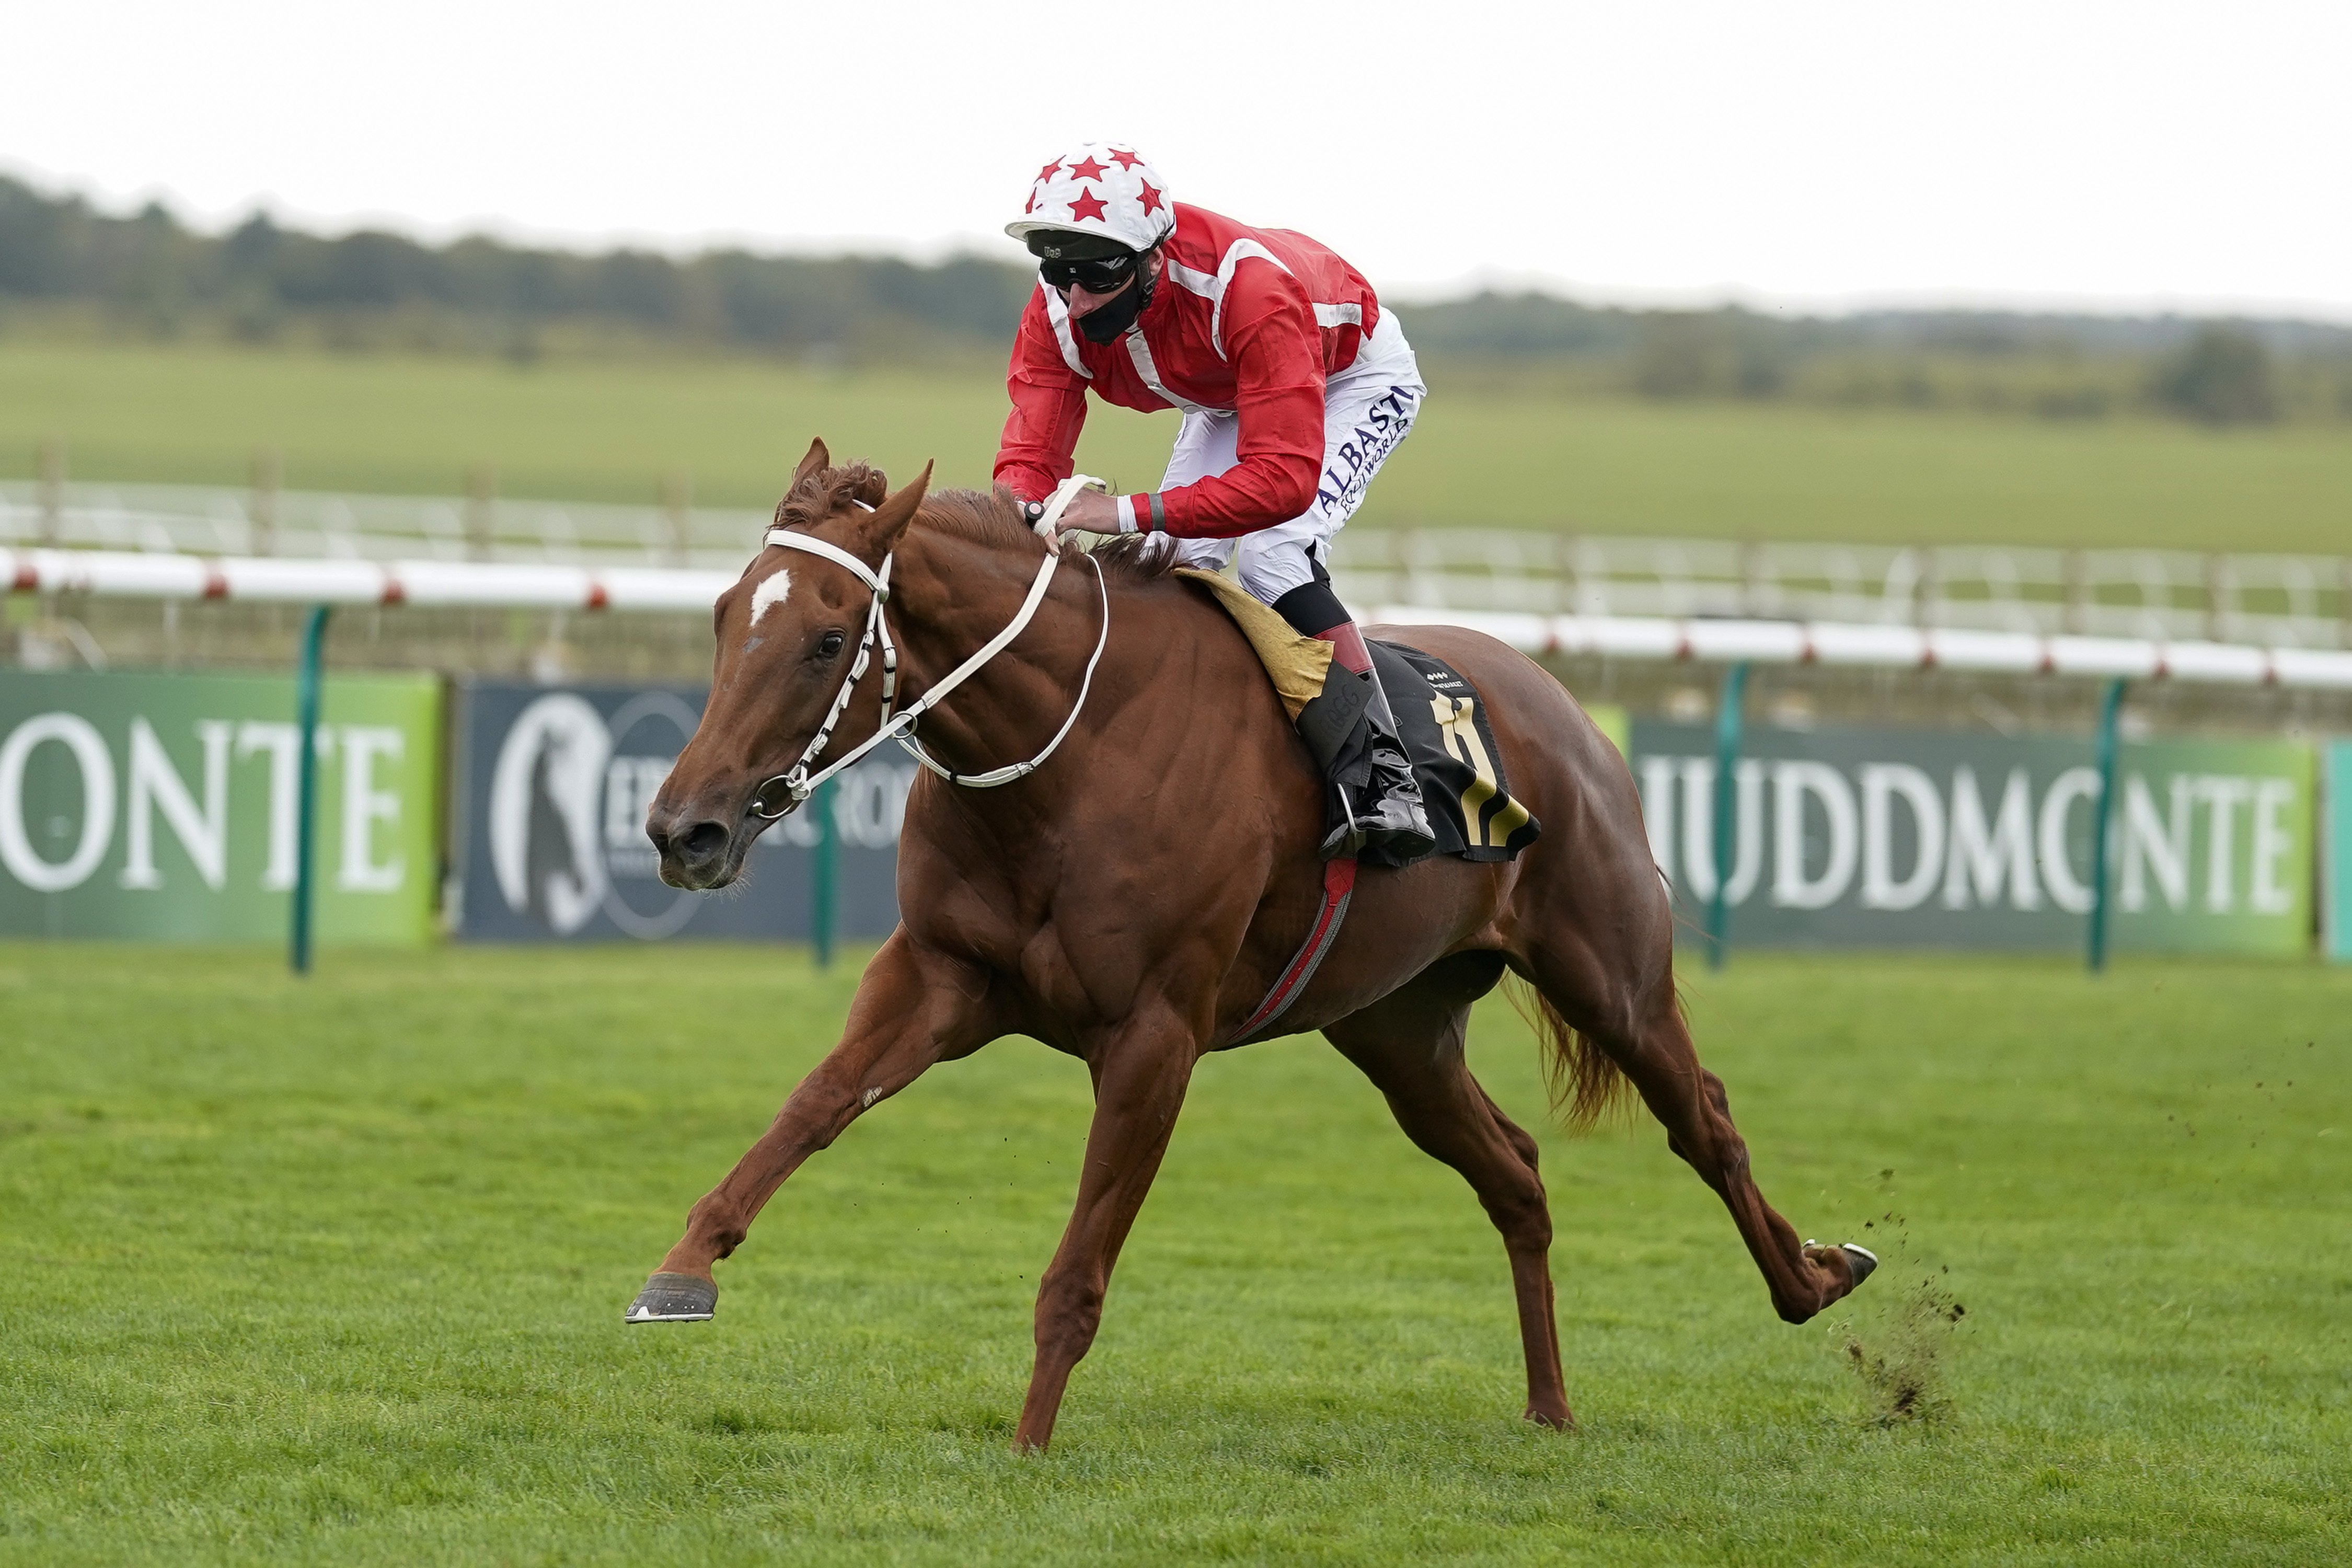 Saffron Beach will sit out Breeders' Cup